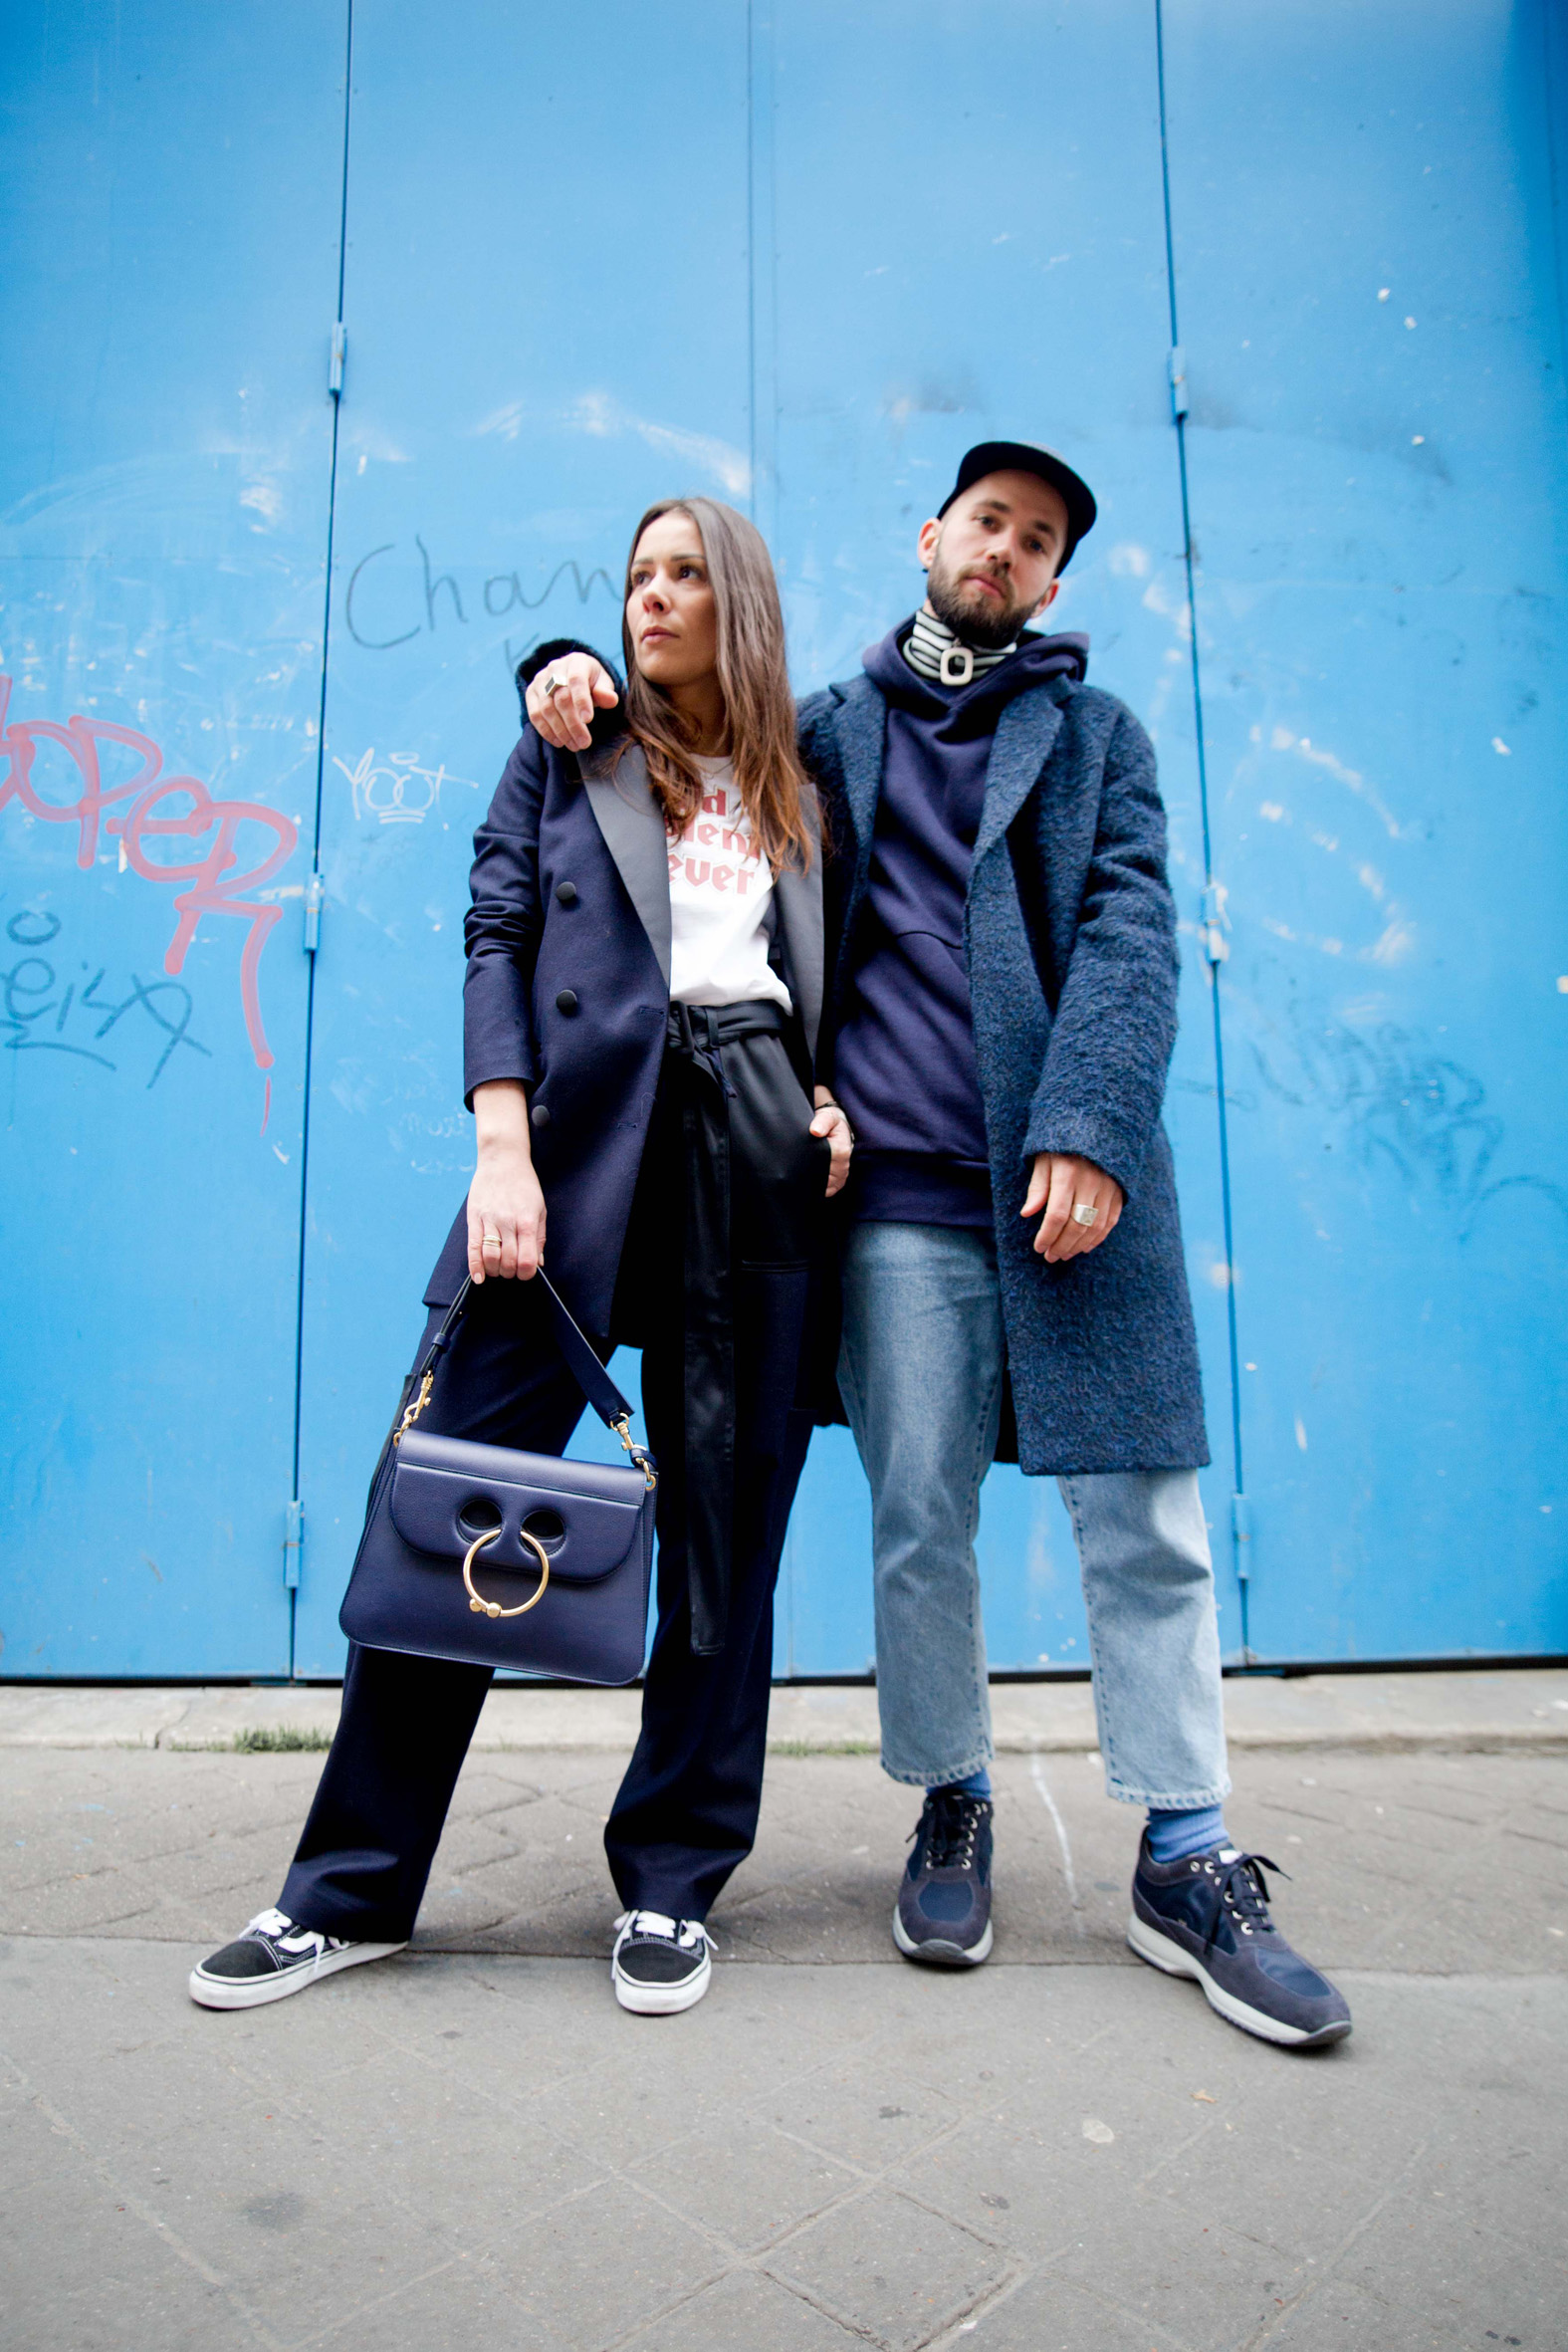 fashion-couple-blog-jaimetoutcheztoi-mode-alice-js-25